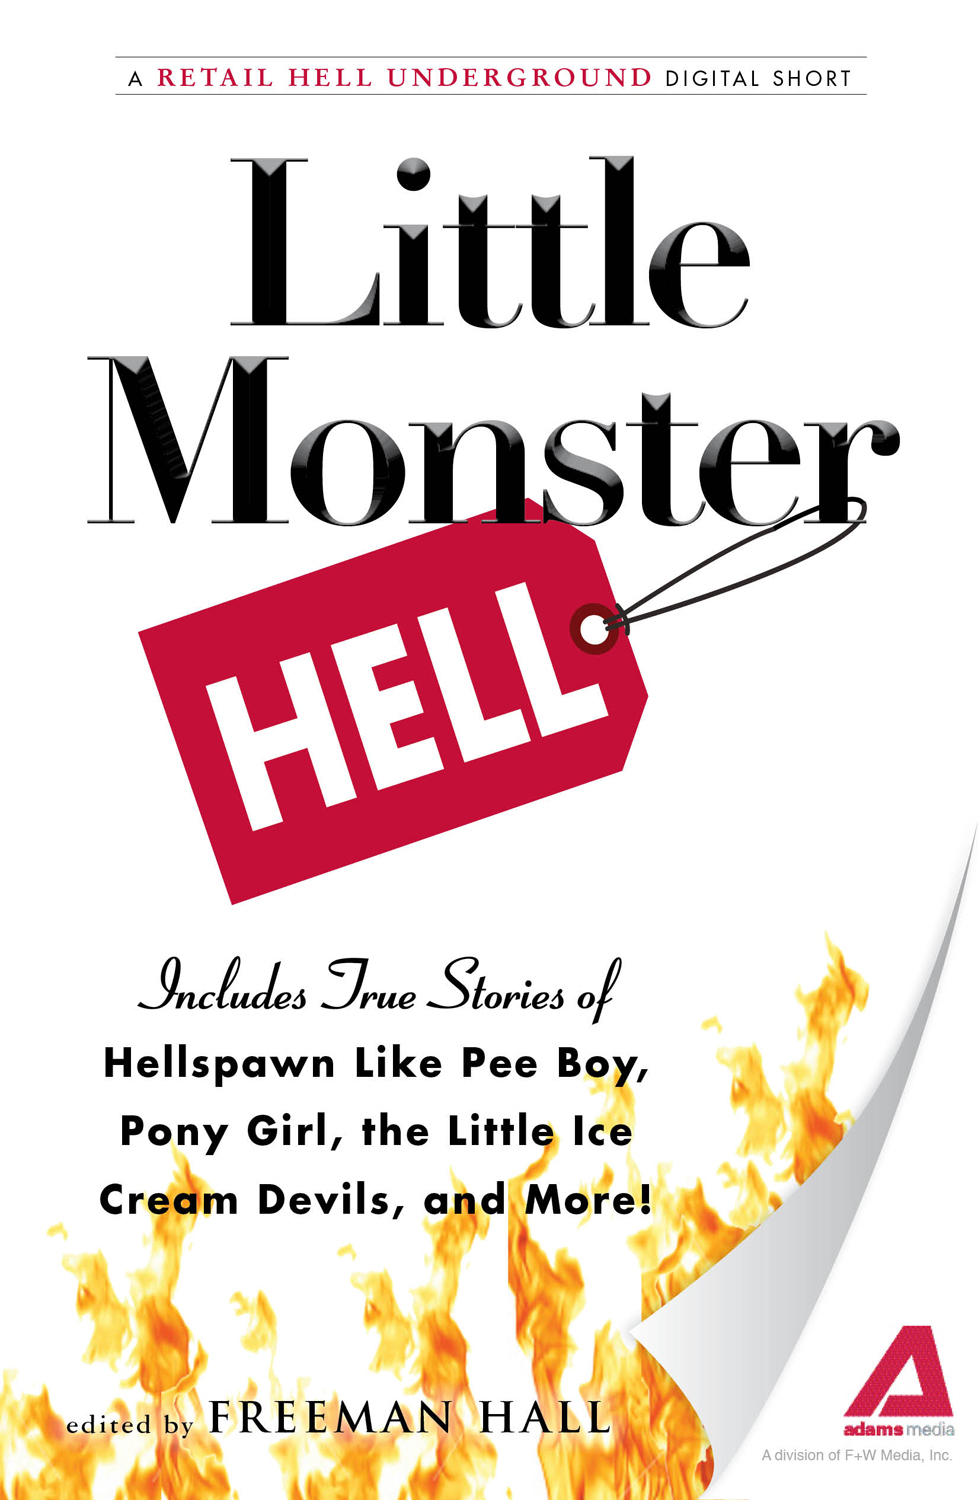 Little Monster Hell: A Retail Hell Underground Digital Short